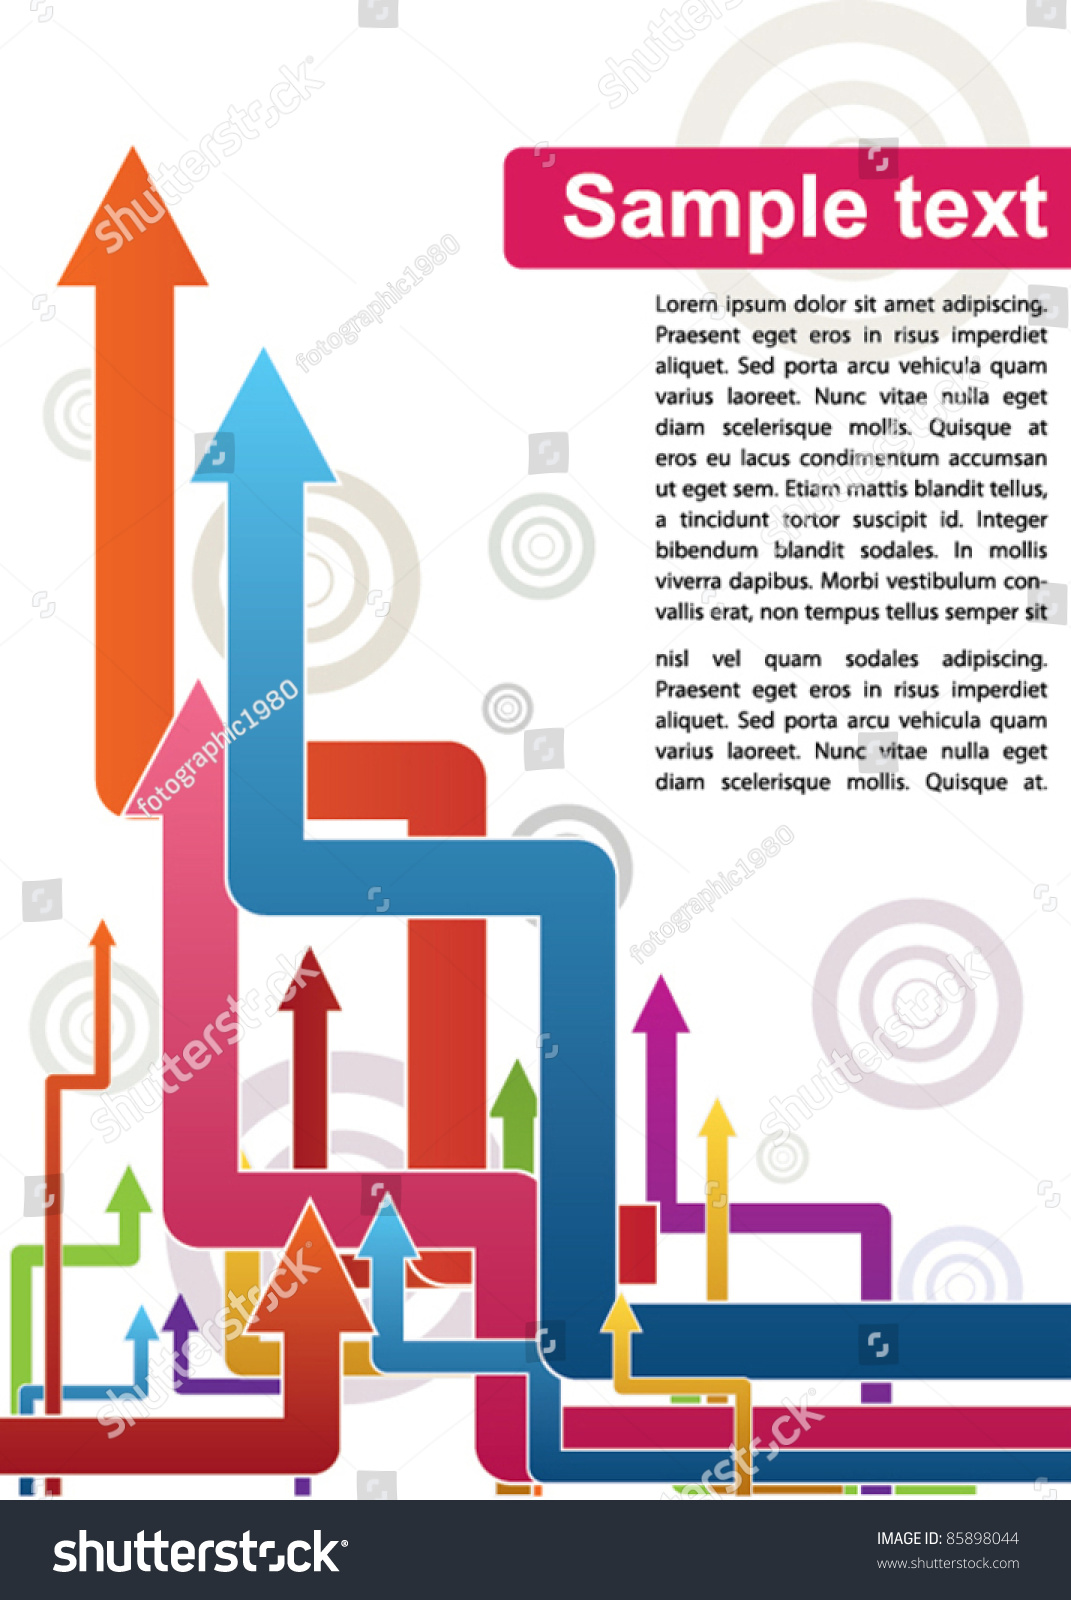 Abstract Arrows Poster Template Stock Vector Illustration 85898044 ...